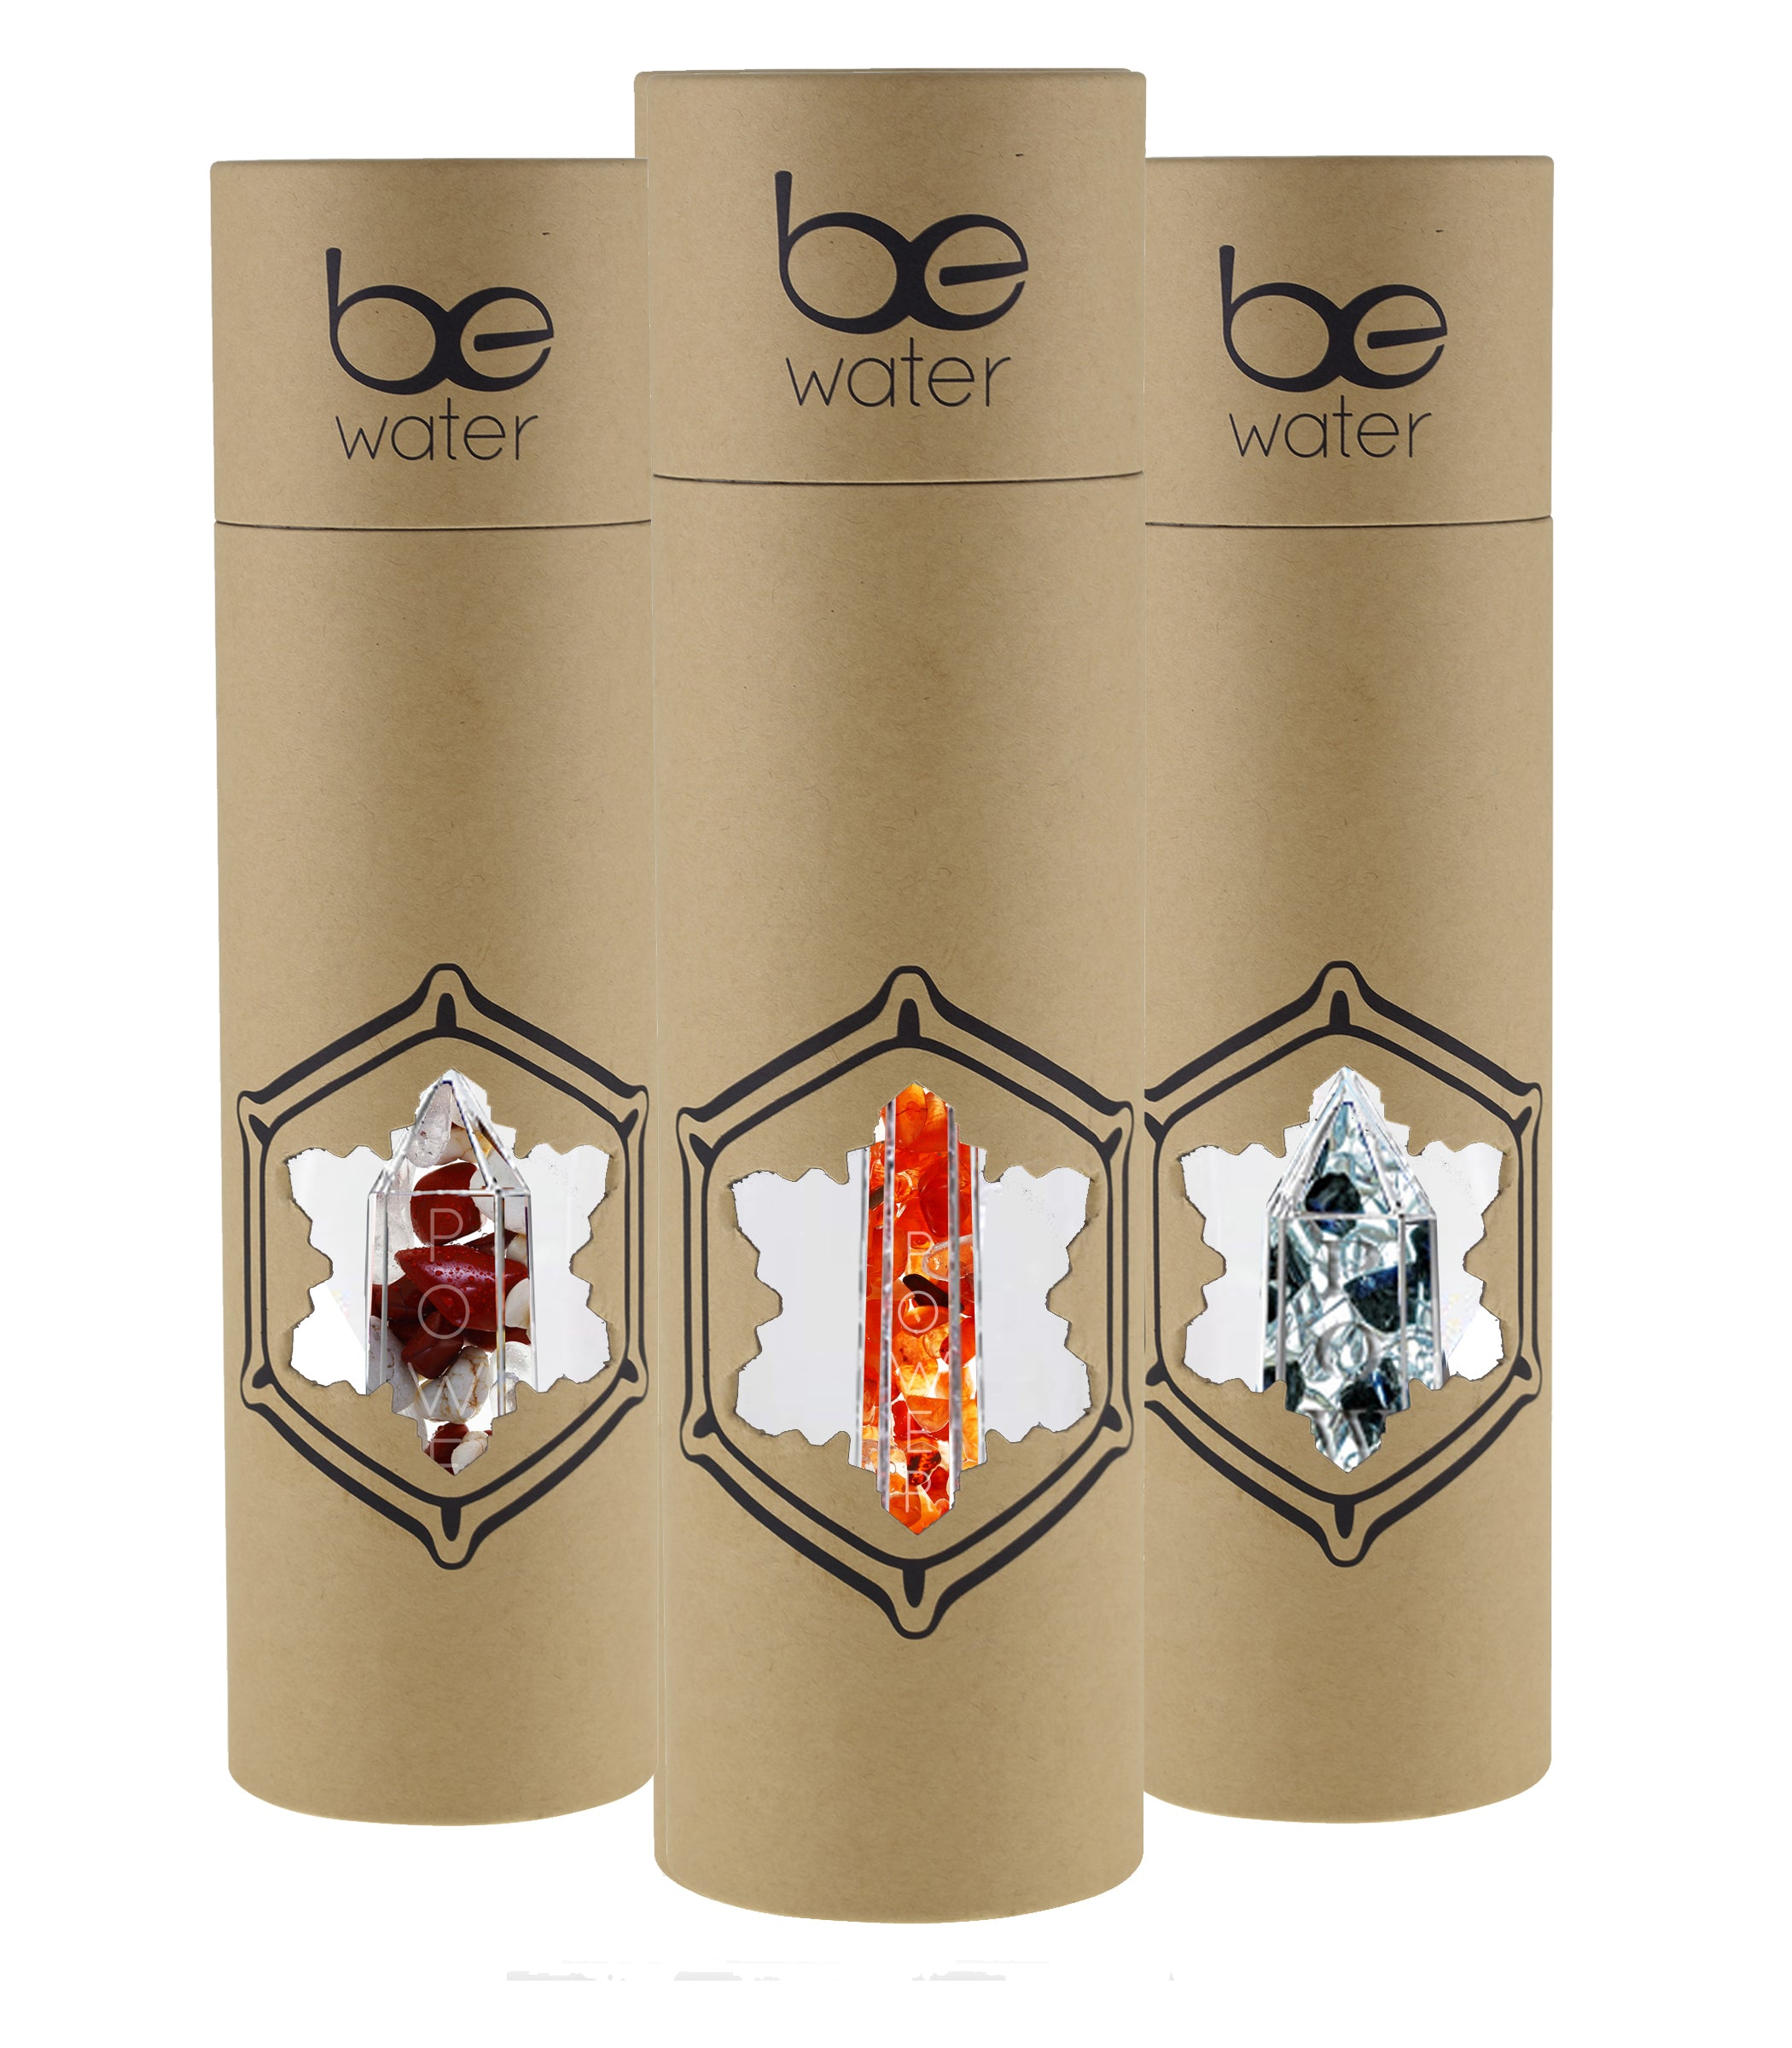 BePower Packaging